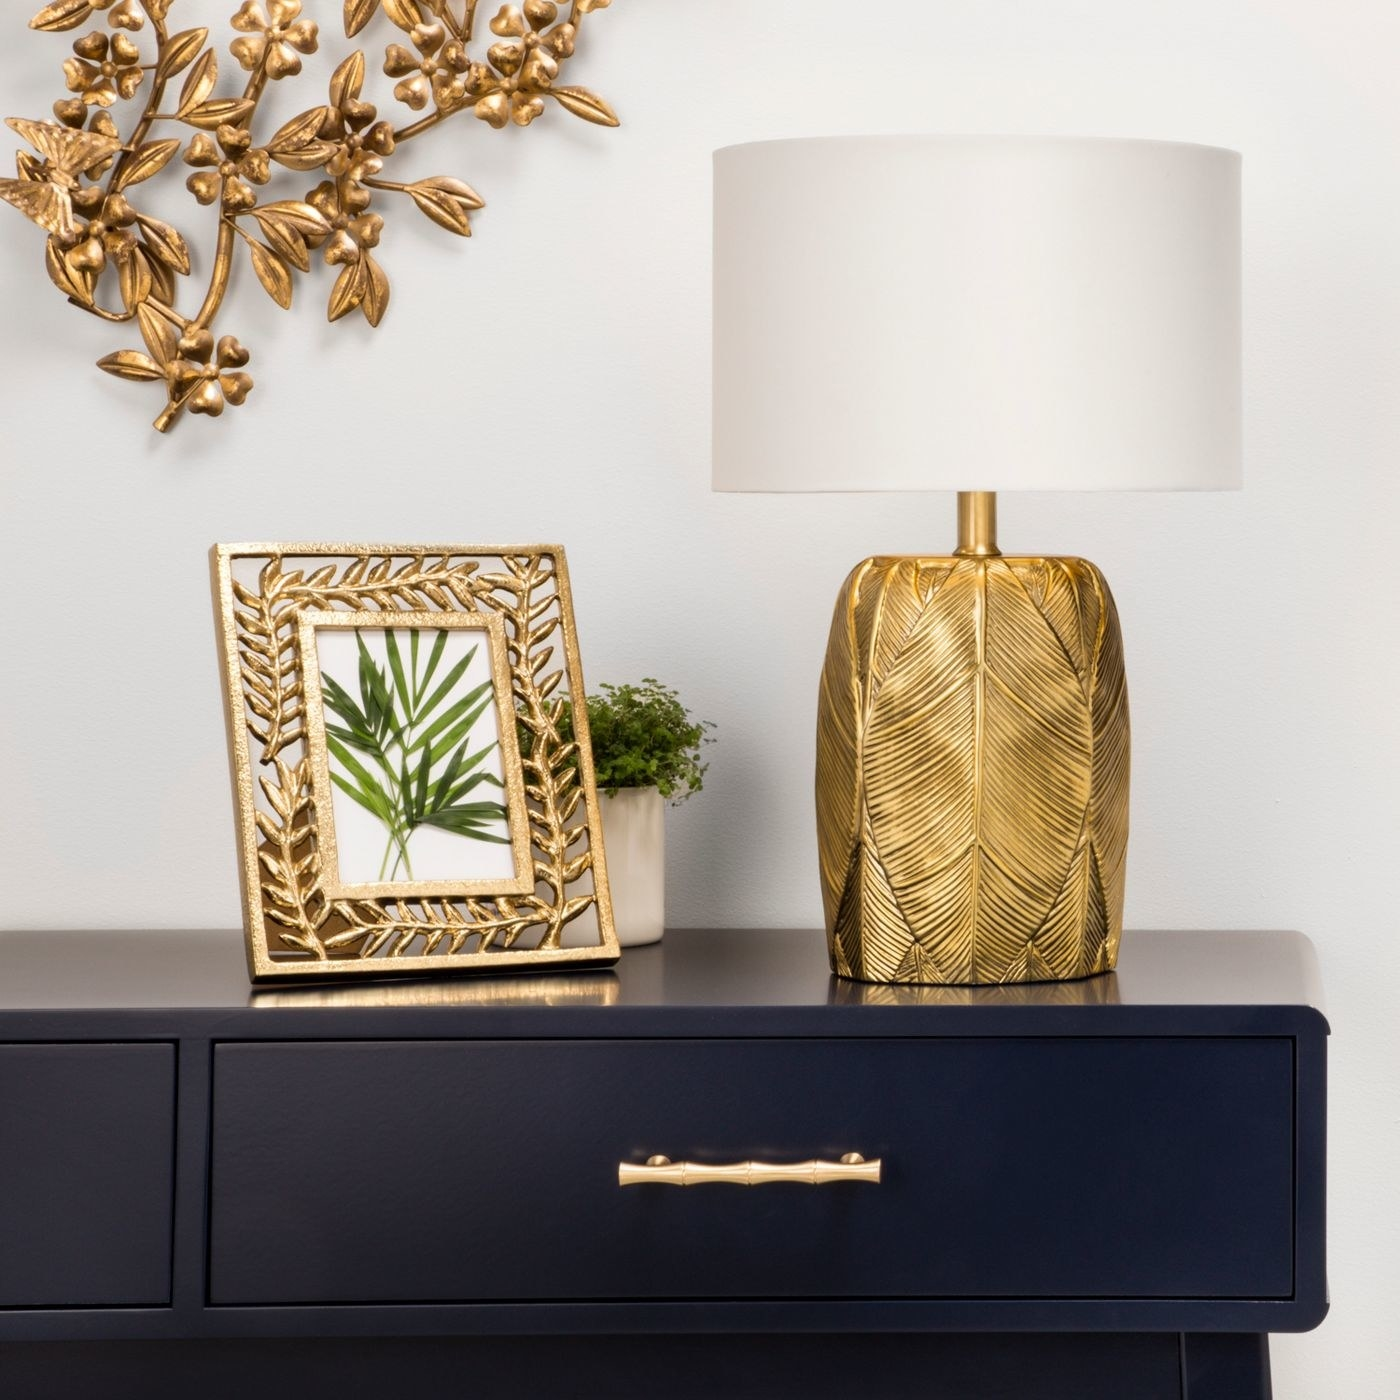 The lamp featured on top of a matching side table